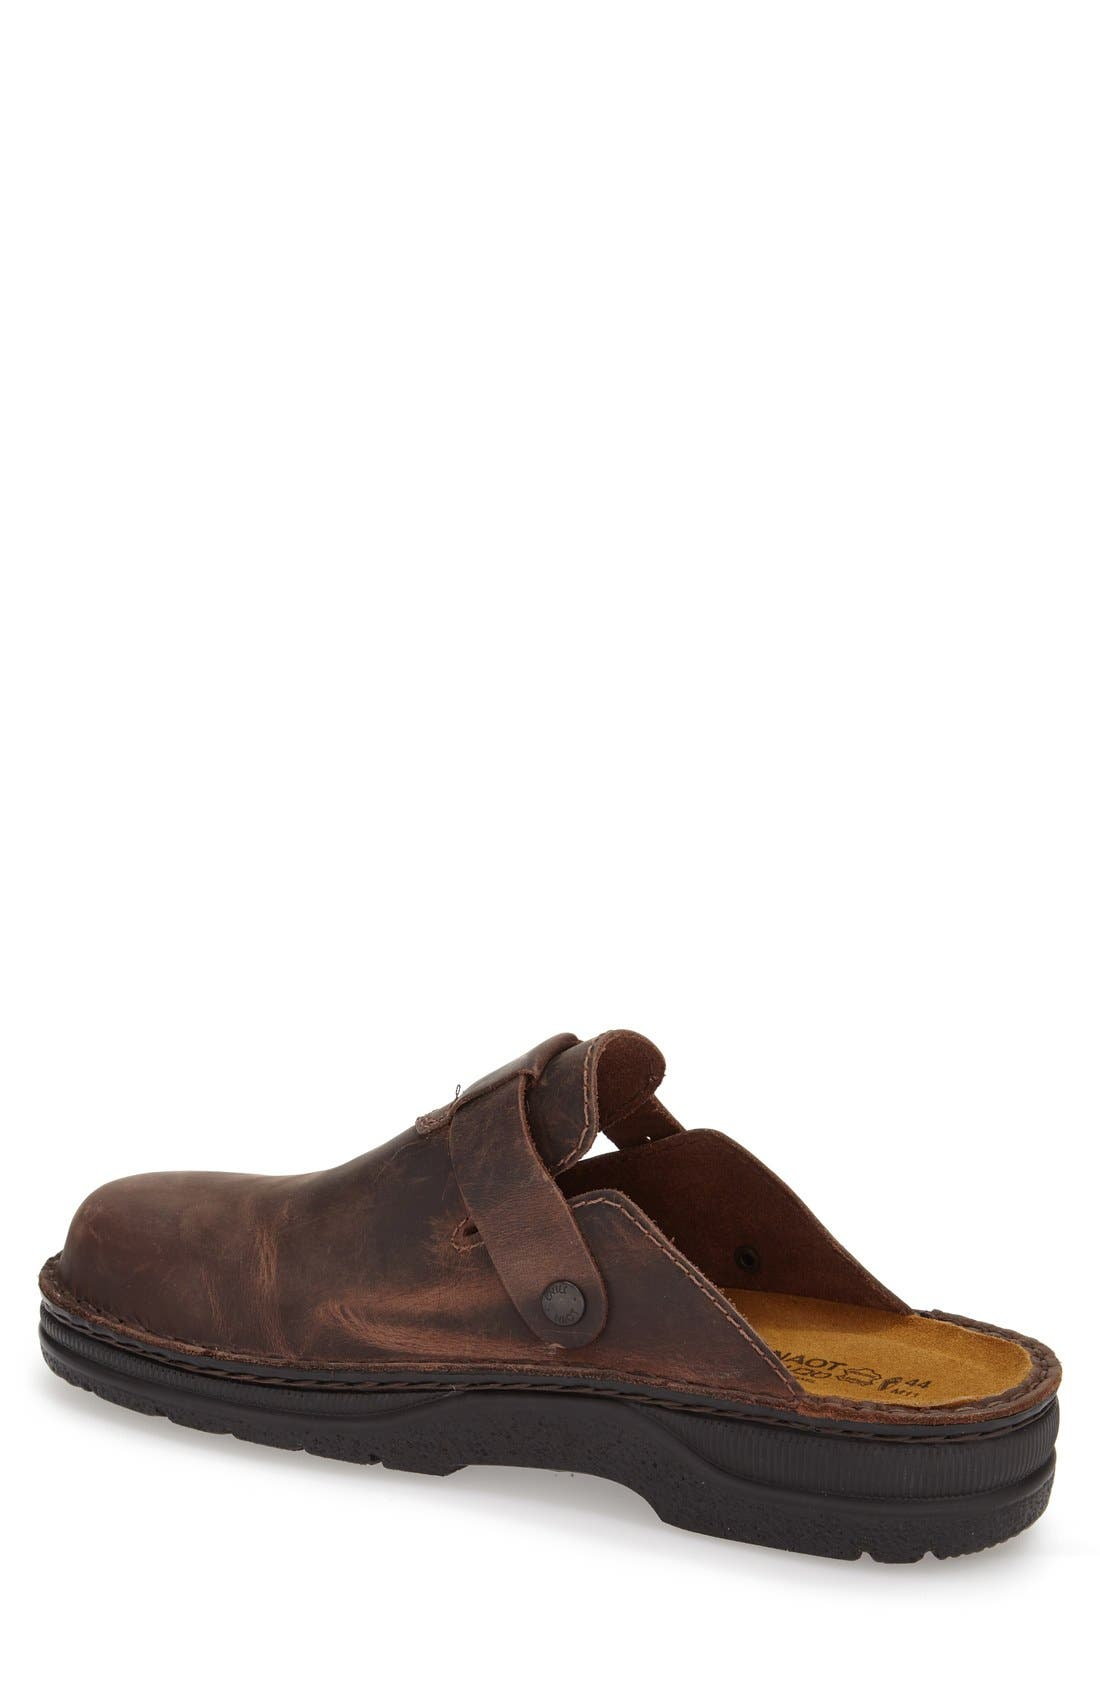 Fiord Clog,                             Alternate thumbnail 2, color,                             BROWN LEATHER